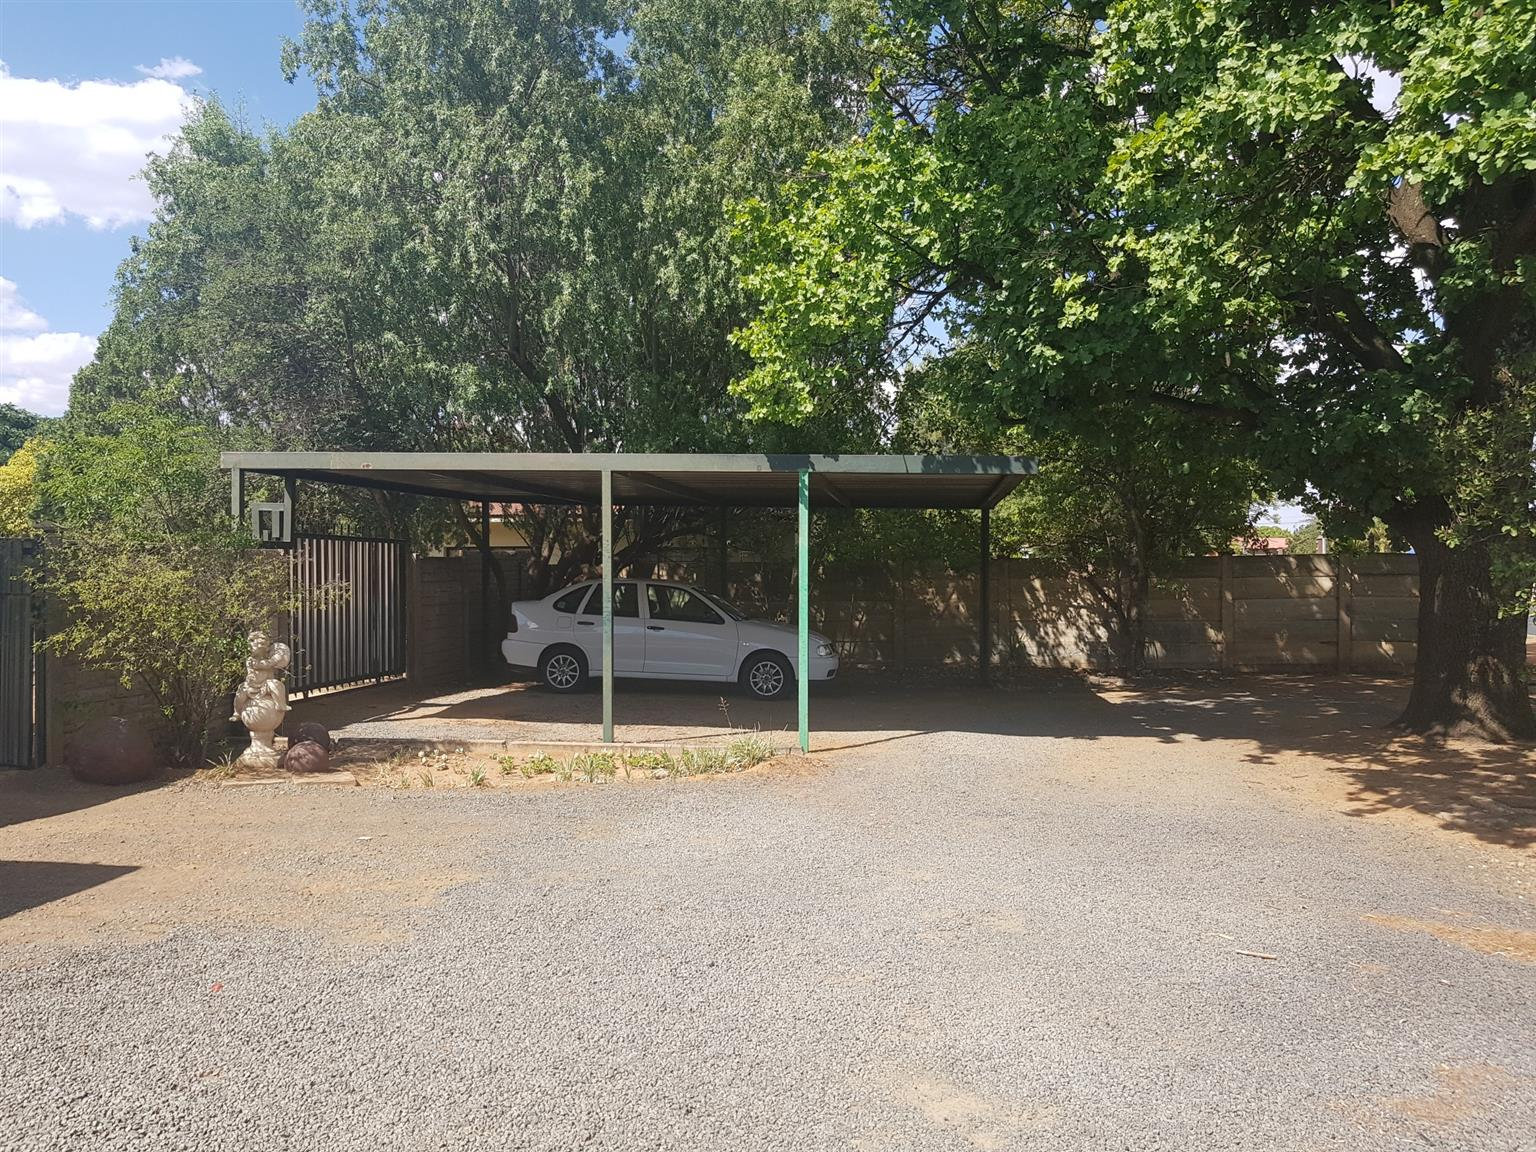 Affordable Bachelor cottage - very spacious - Parkwest - R3990pm water included with pre-paid electricity.